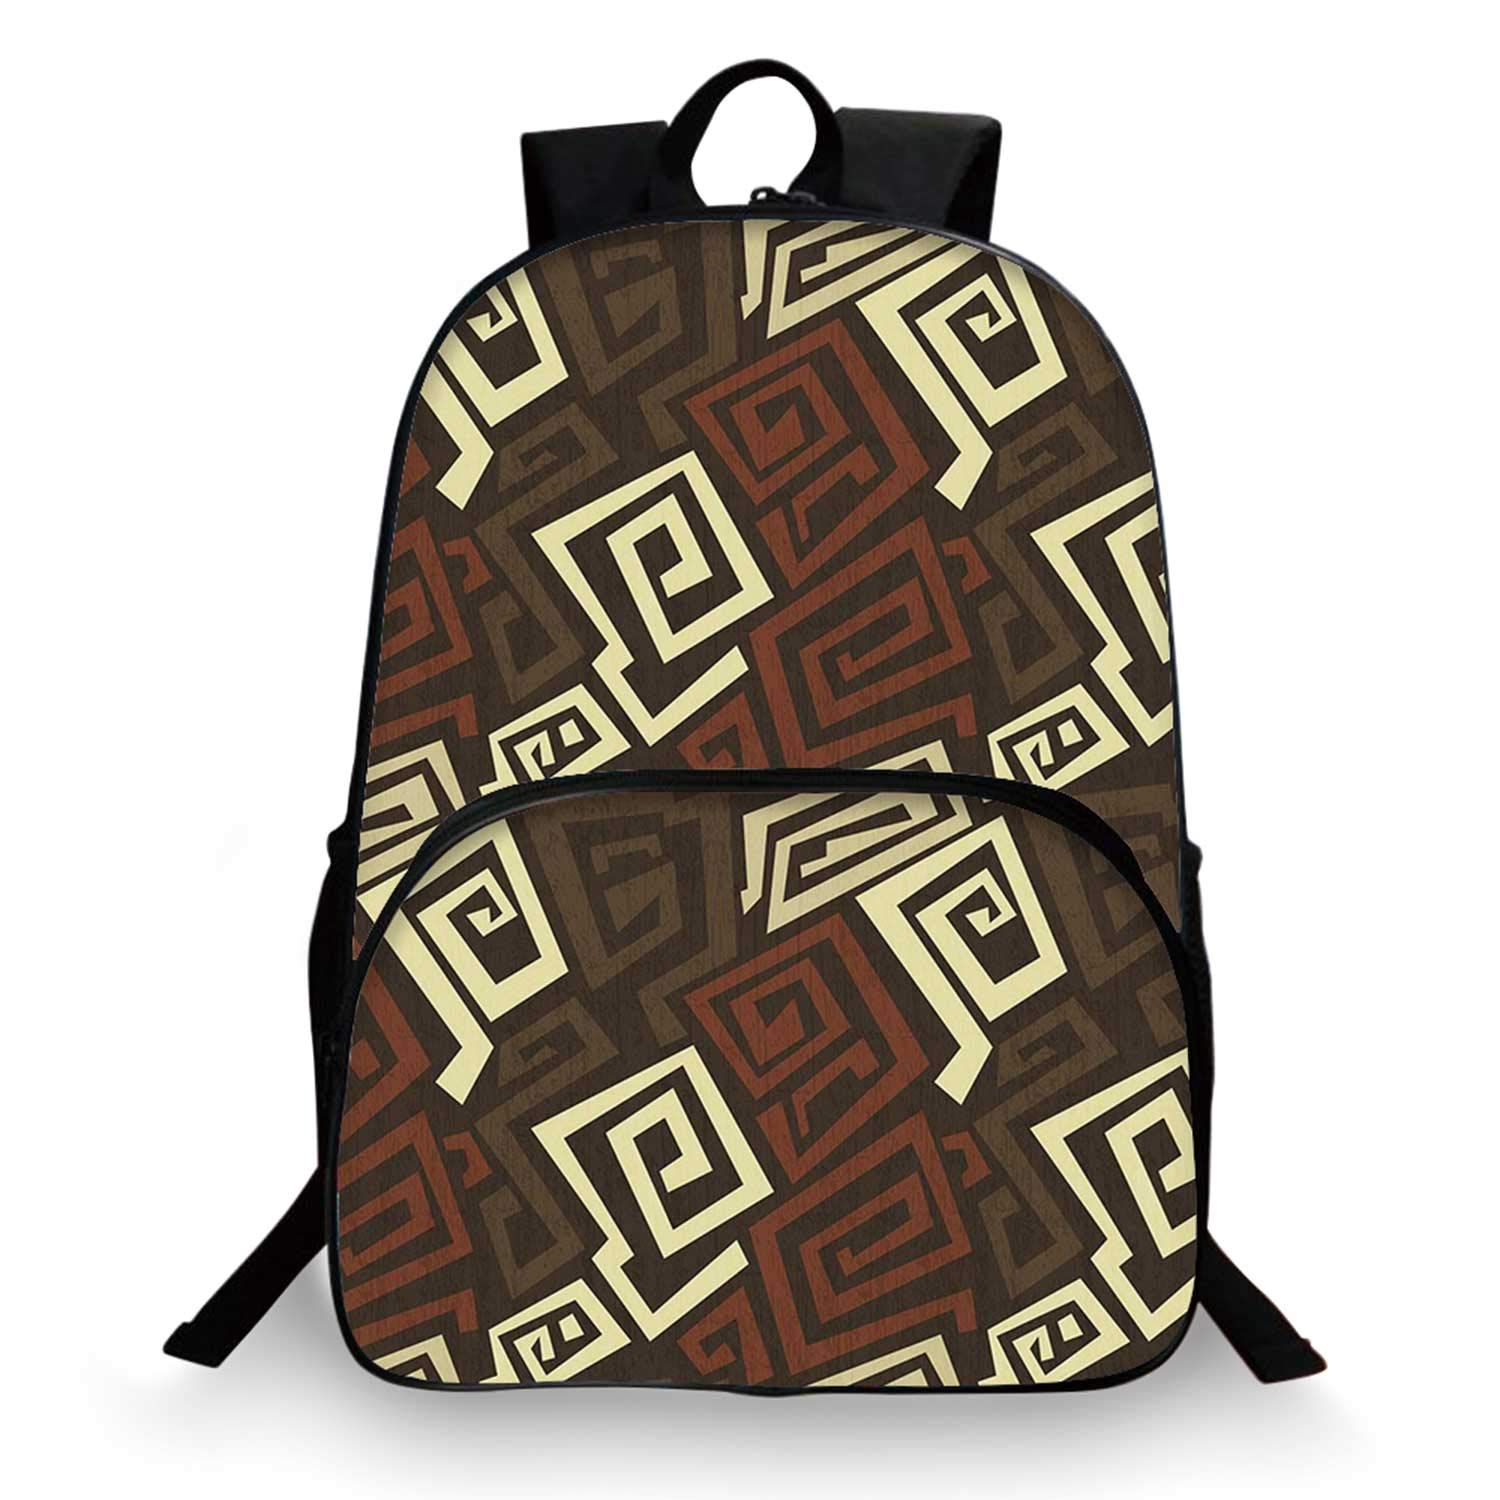 Grunge Various Schoolbag,Ancient Indigenous Design with Grunge Effect Twisted Lines Geometric Folk for student,11''Lx6''Wx15''H by C COABALLA